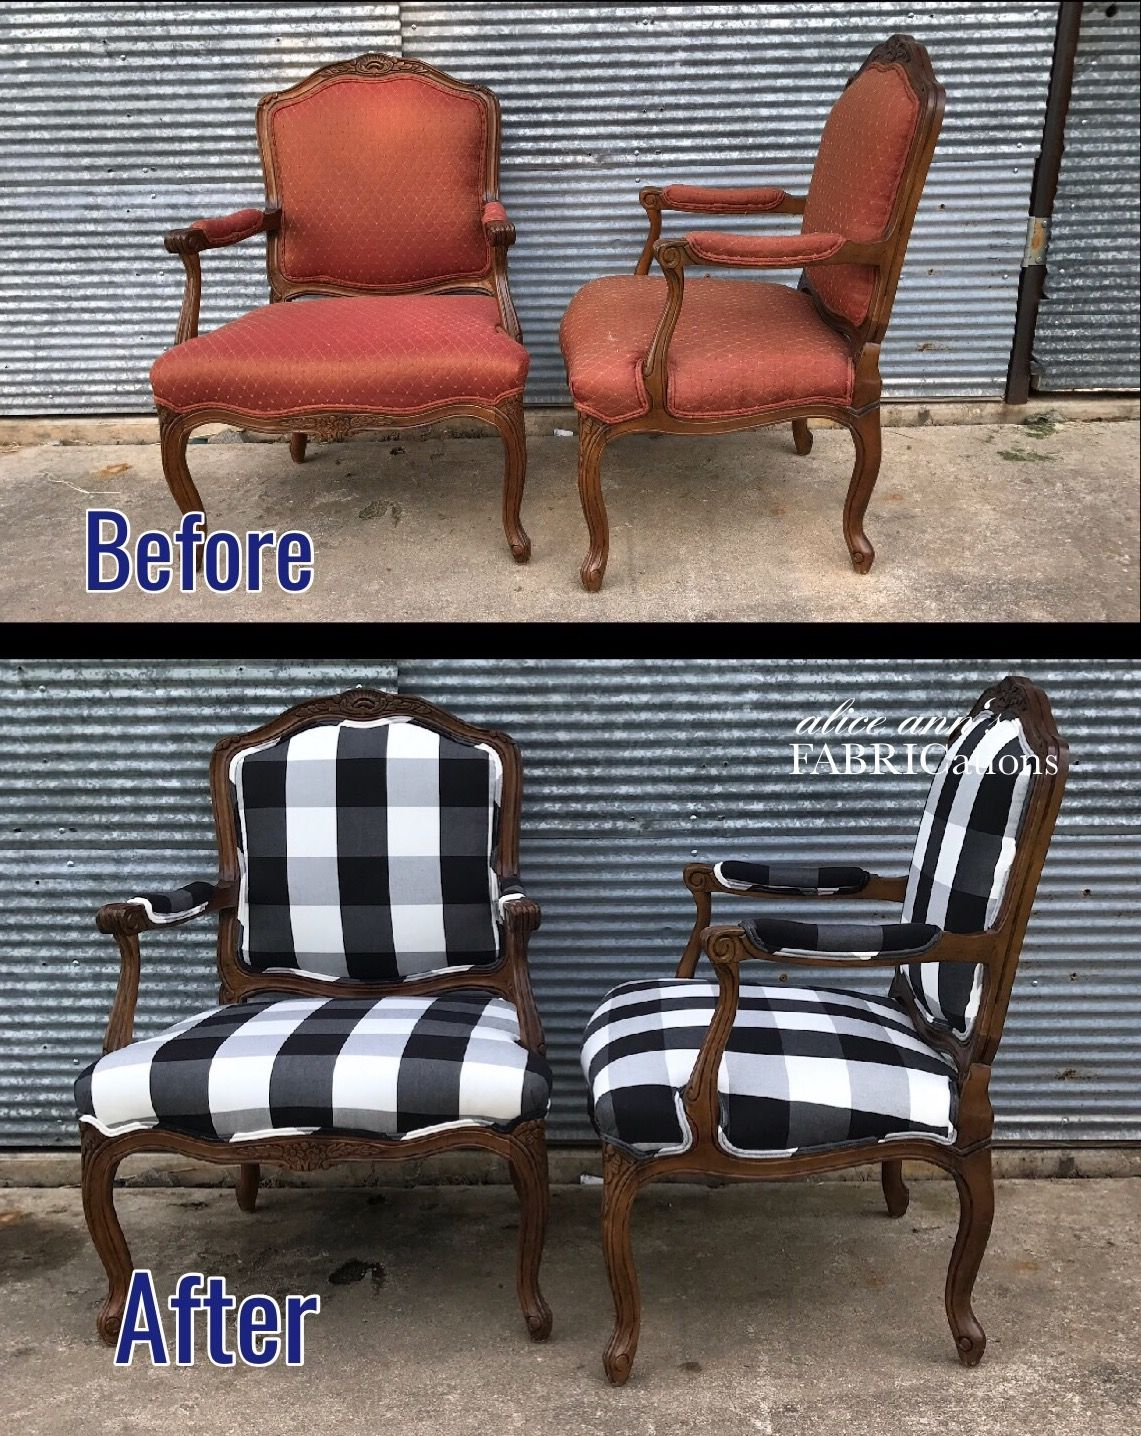 Before and After! Love the black and white check fabric ...